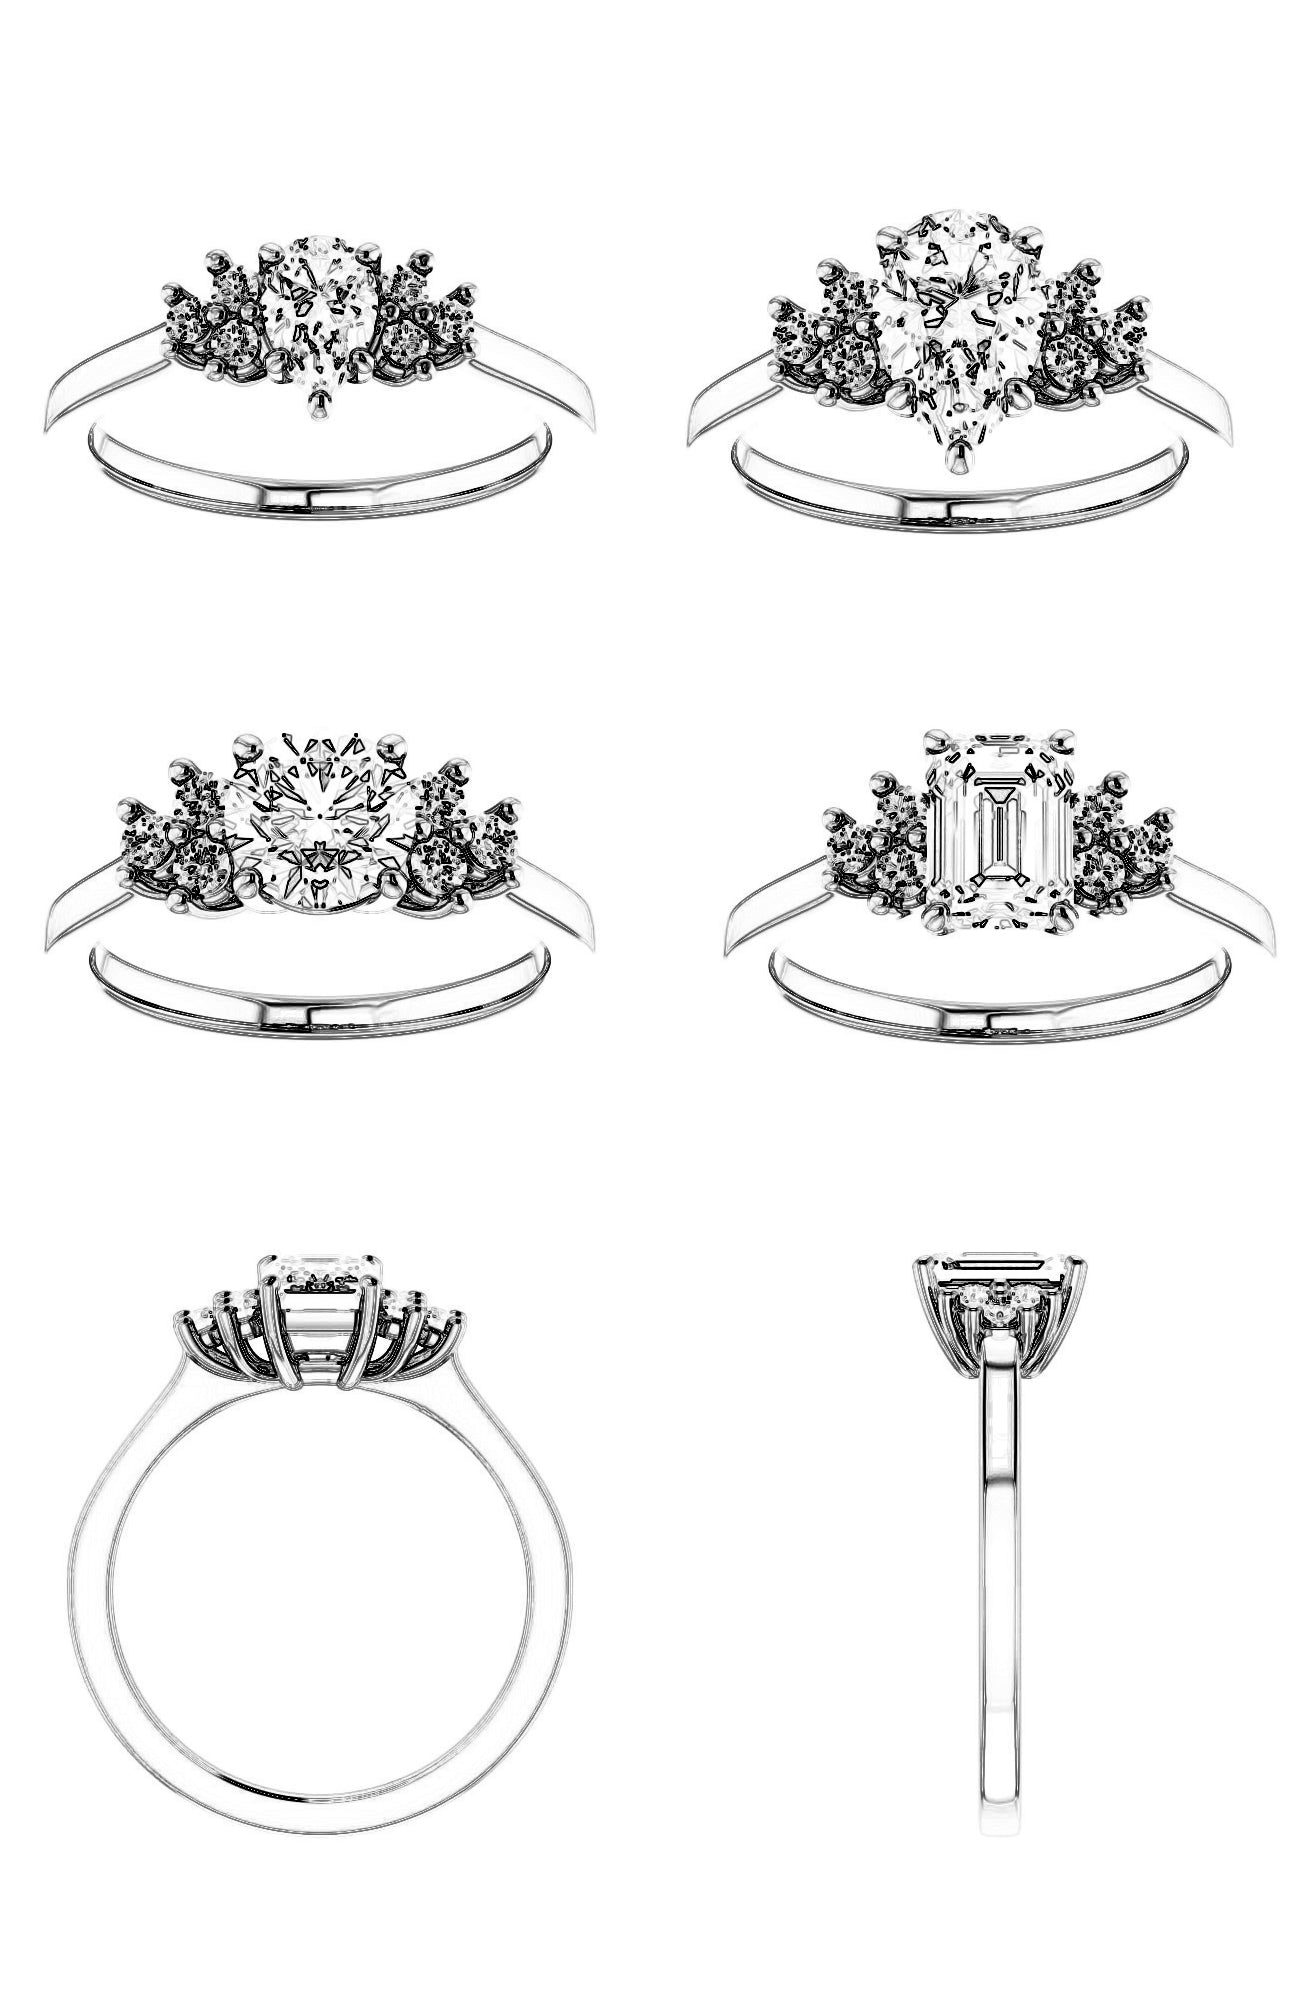 Veragene setting - Salt & Pepper Celestial Diamond Engagement Rings and Wedding Bands  by Midwinter Co.